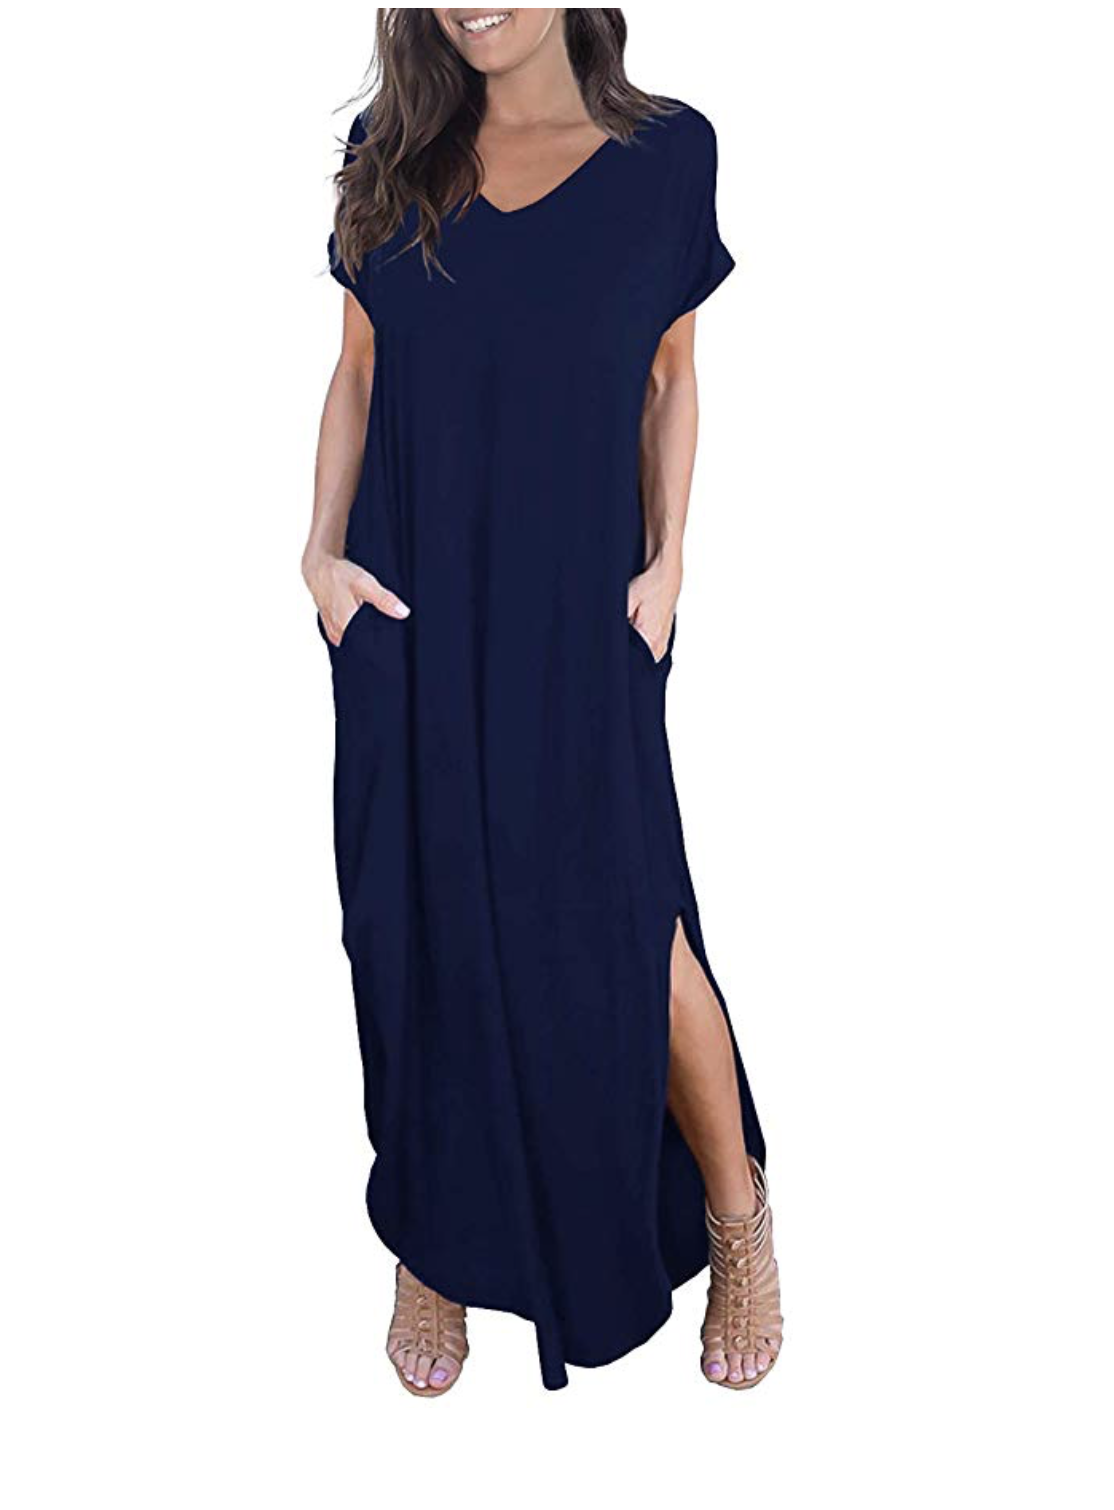 The Best Amazon Spring Summer Fashion Finds Moms On The Clock Maxi Dress Casual Dress Casual Dresses [ 1510 x 1114 Pixel ]